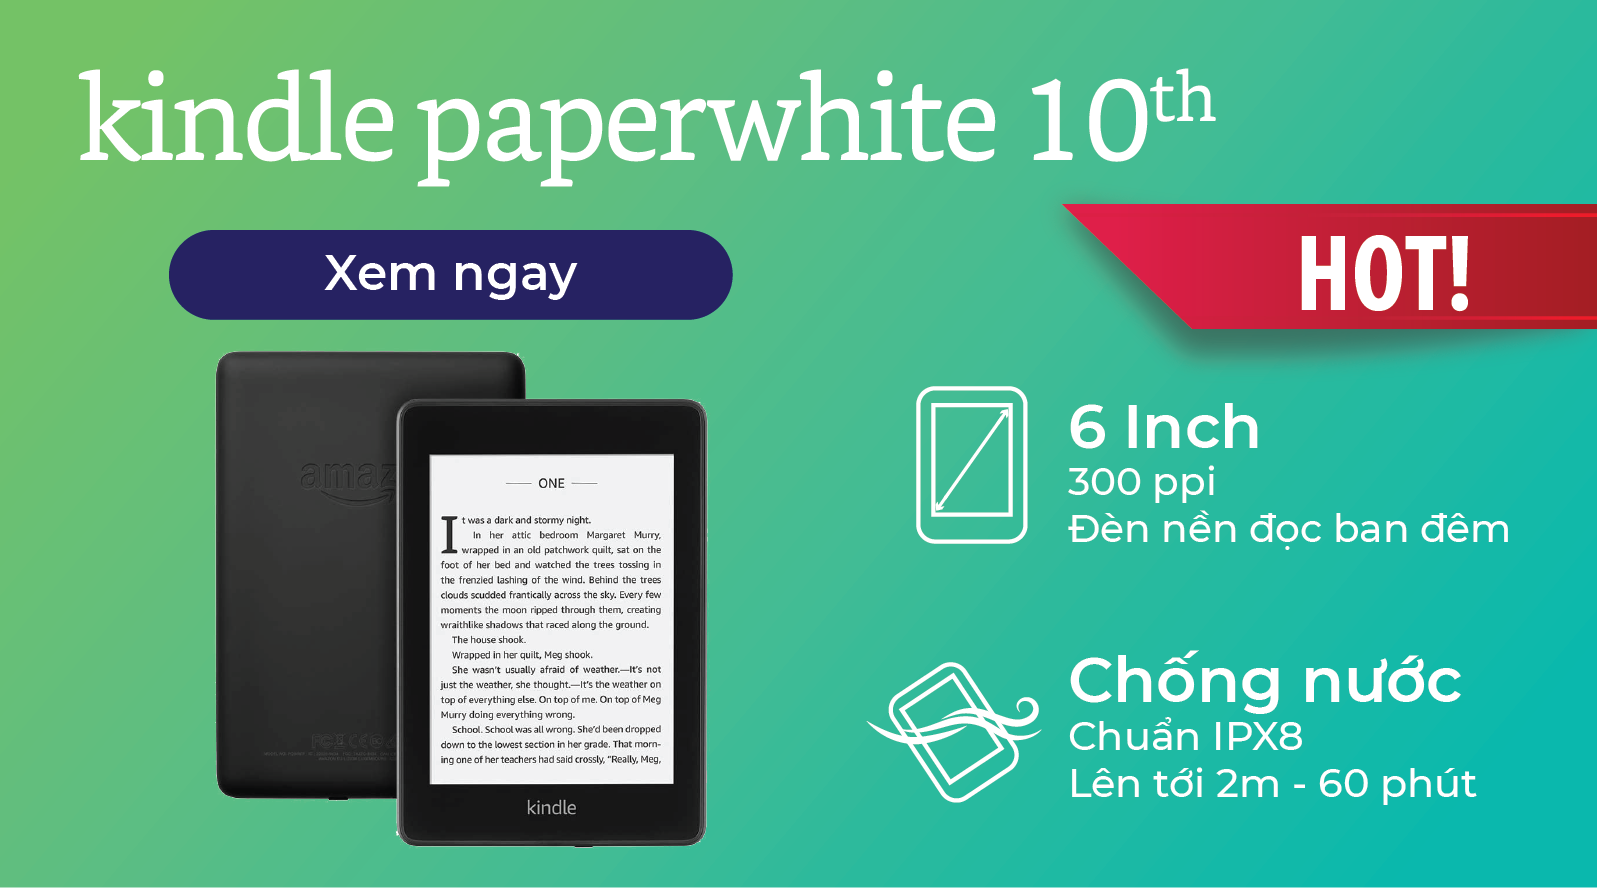 https://akishop.com.vn/may-doc-sach-kindle-paperwhite-gen-4-10th-8-gb-pd113192.html